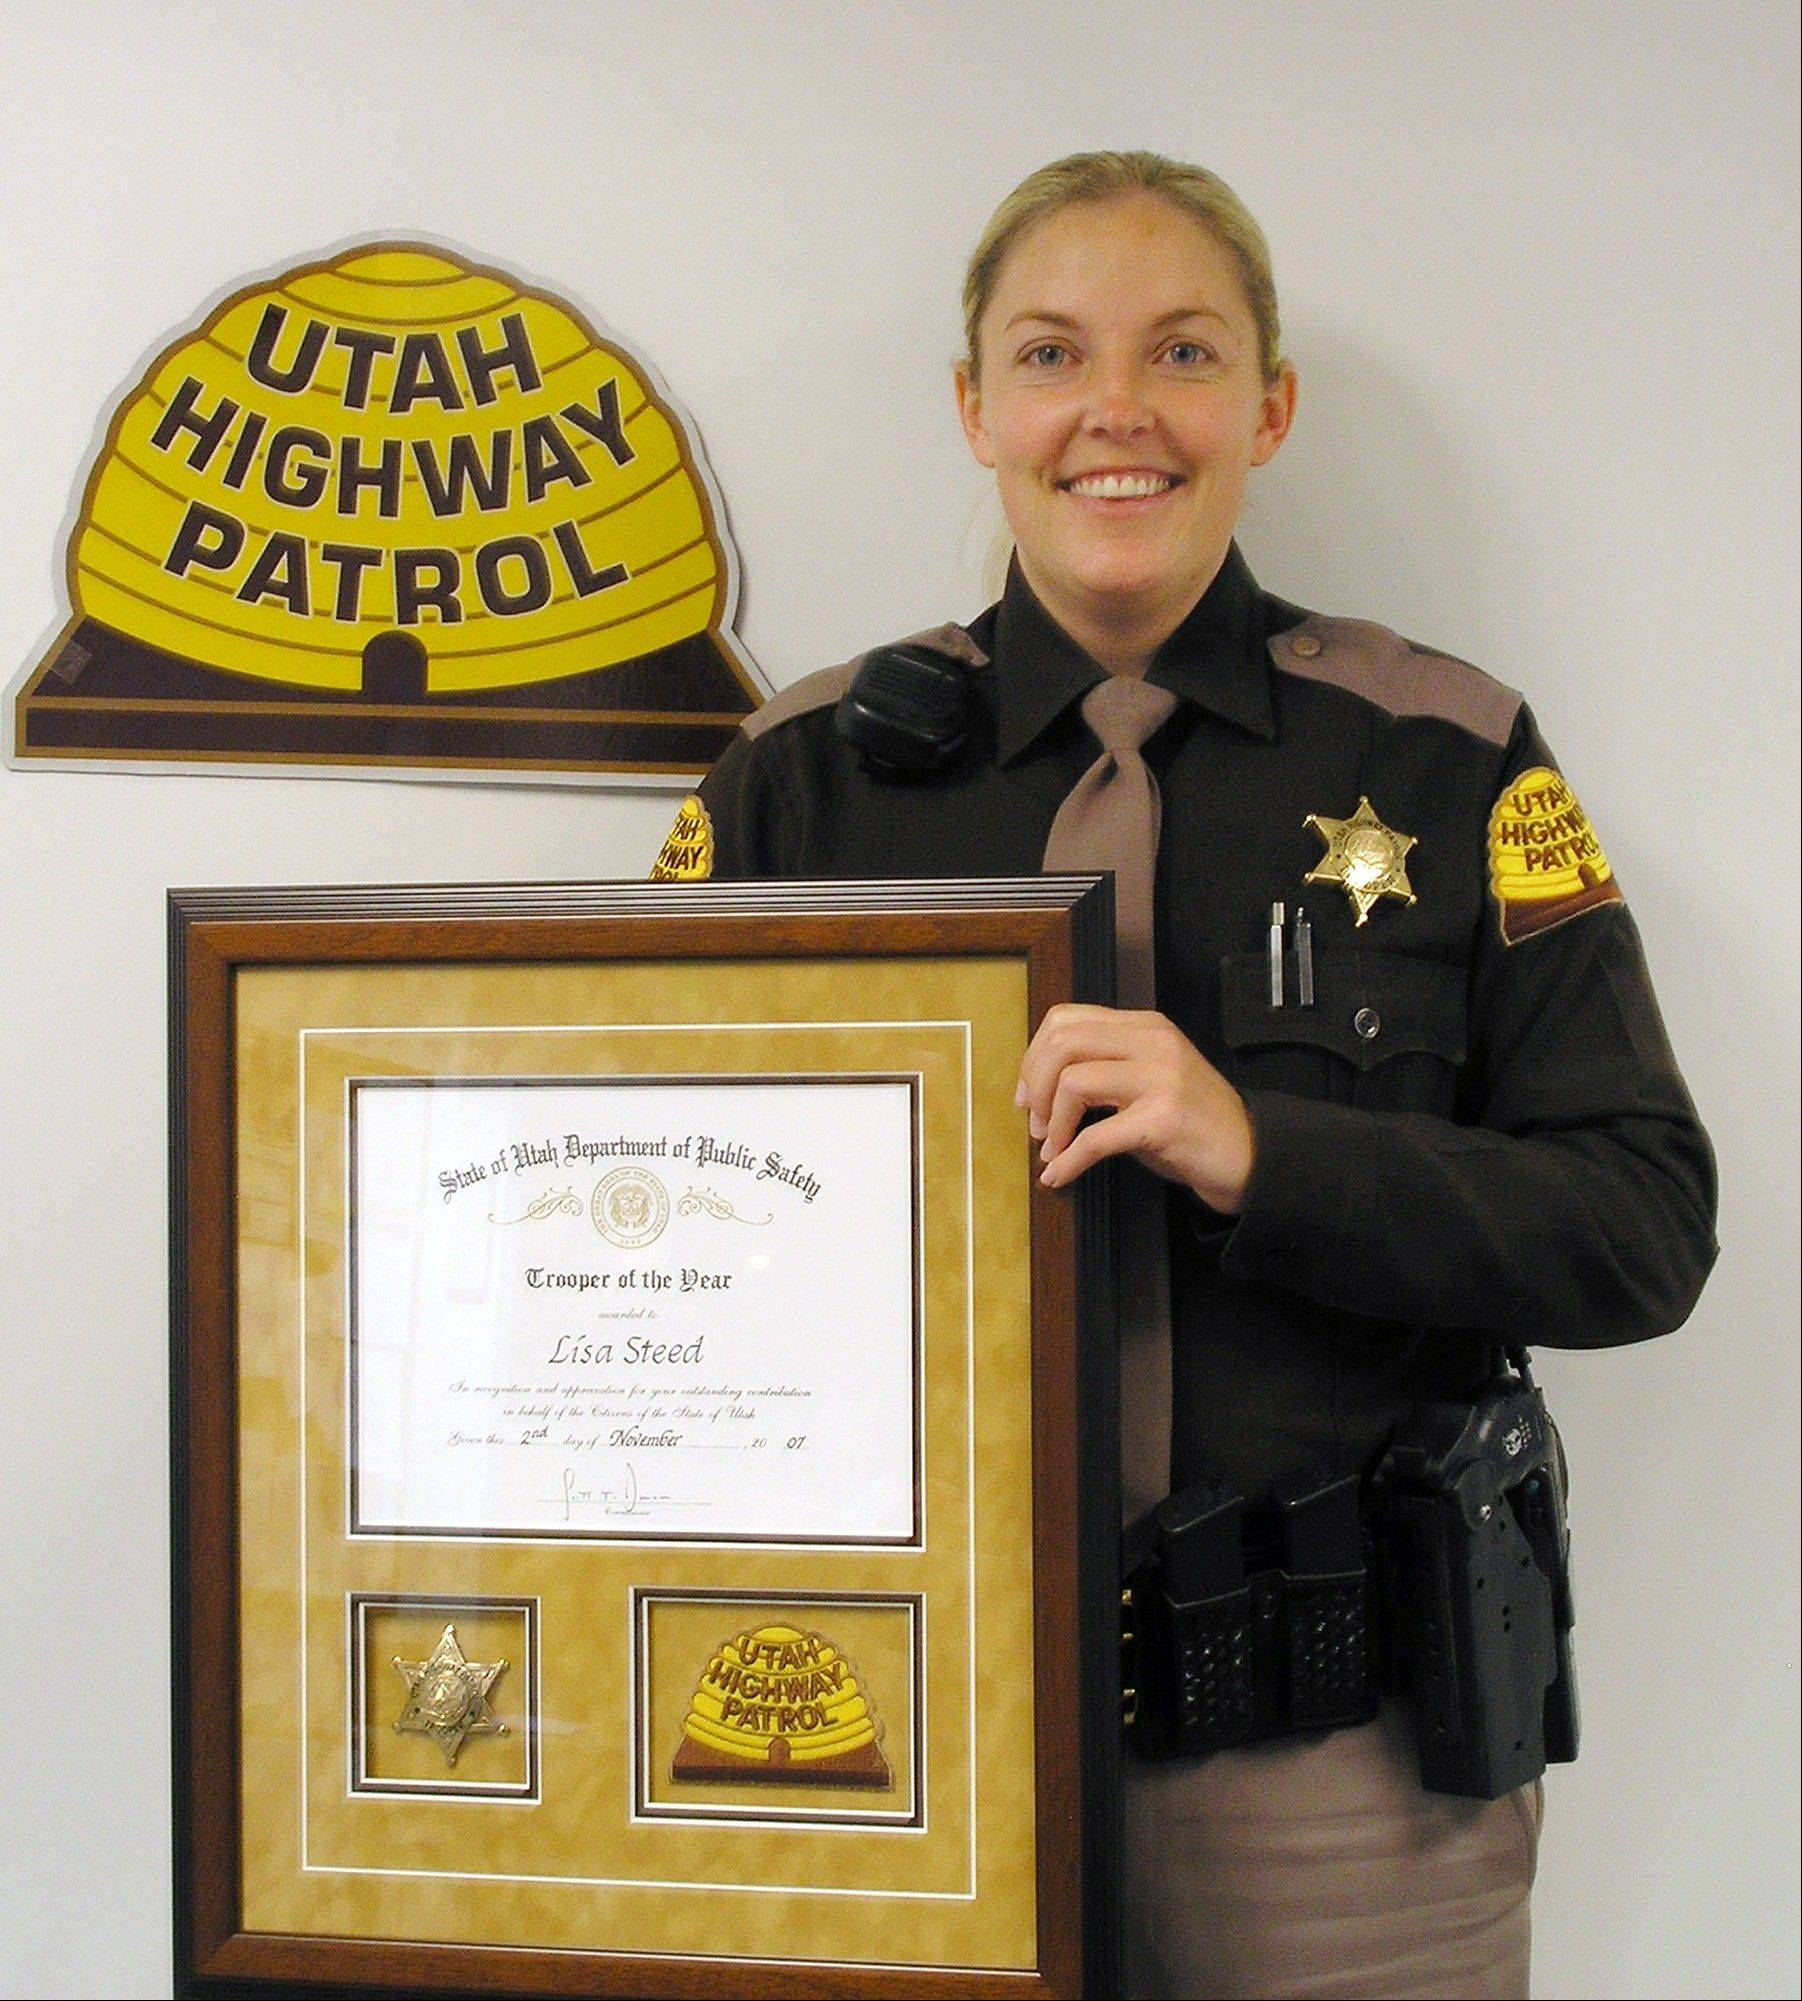 Once a rising star in the ranks of the Utah Highway Patrol, Officer Lisa Steed has taken a stunning fall from grace based on allegations that she booked dozens of people for DUIs when they hadn't been drinking at all.